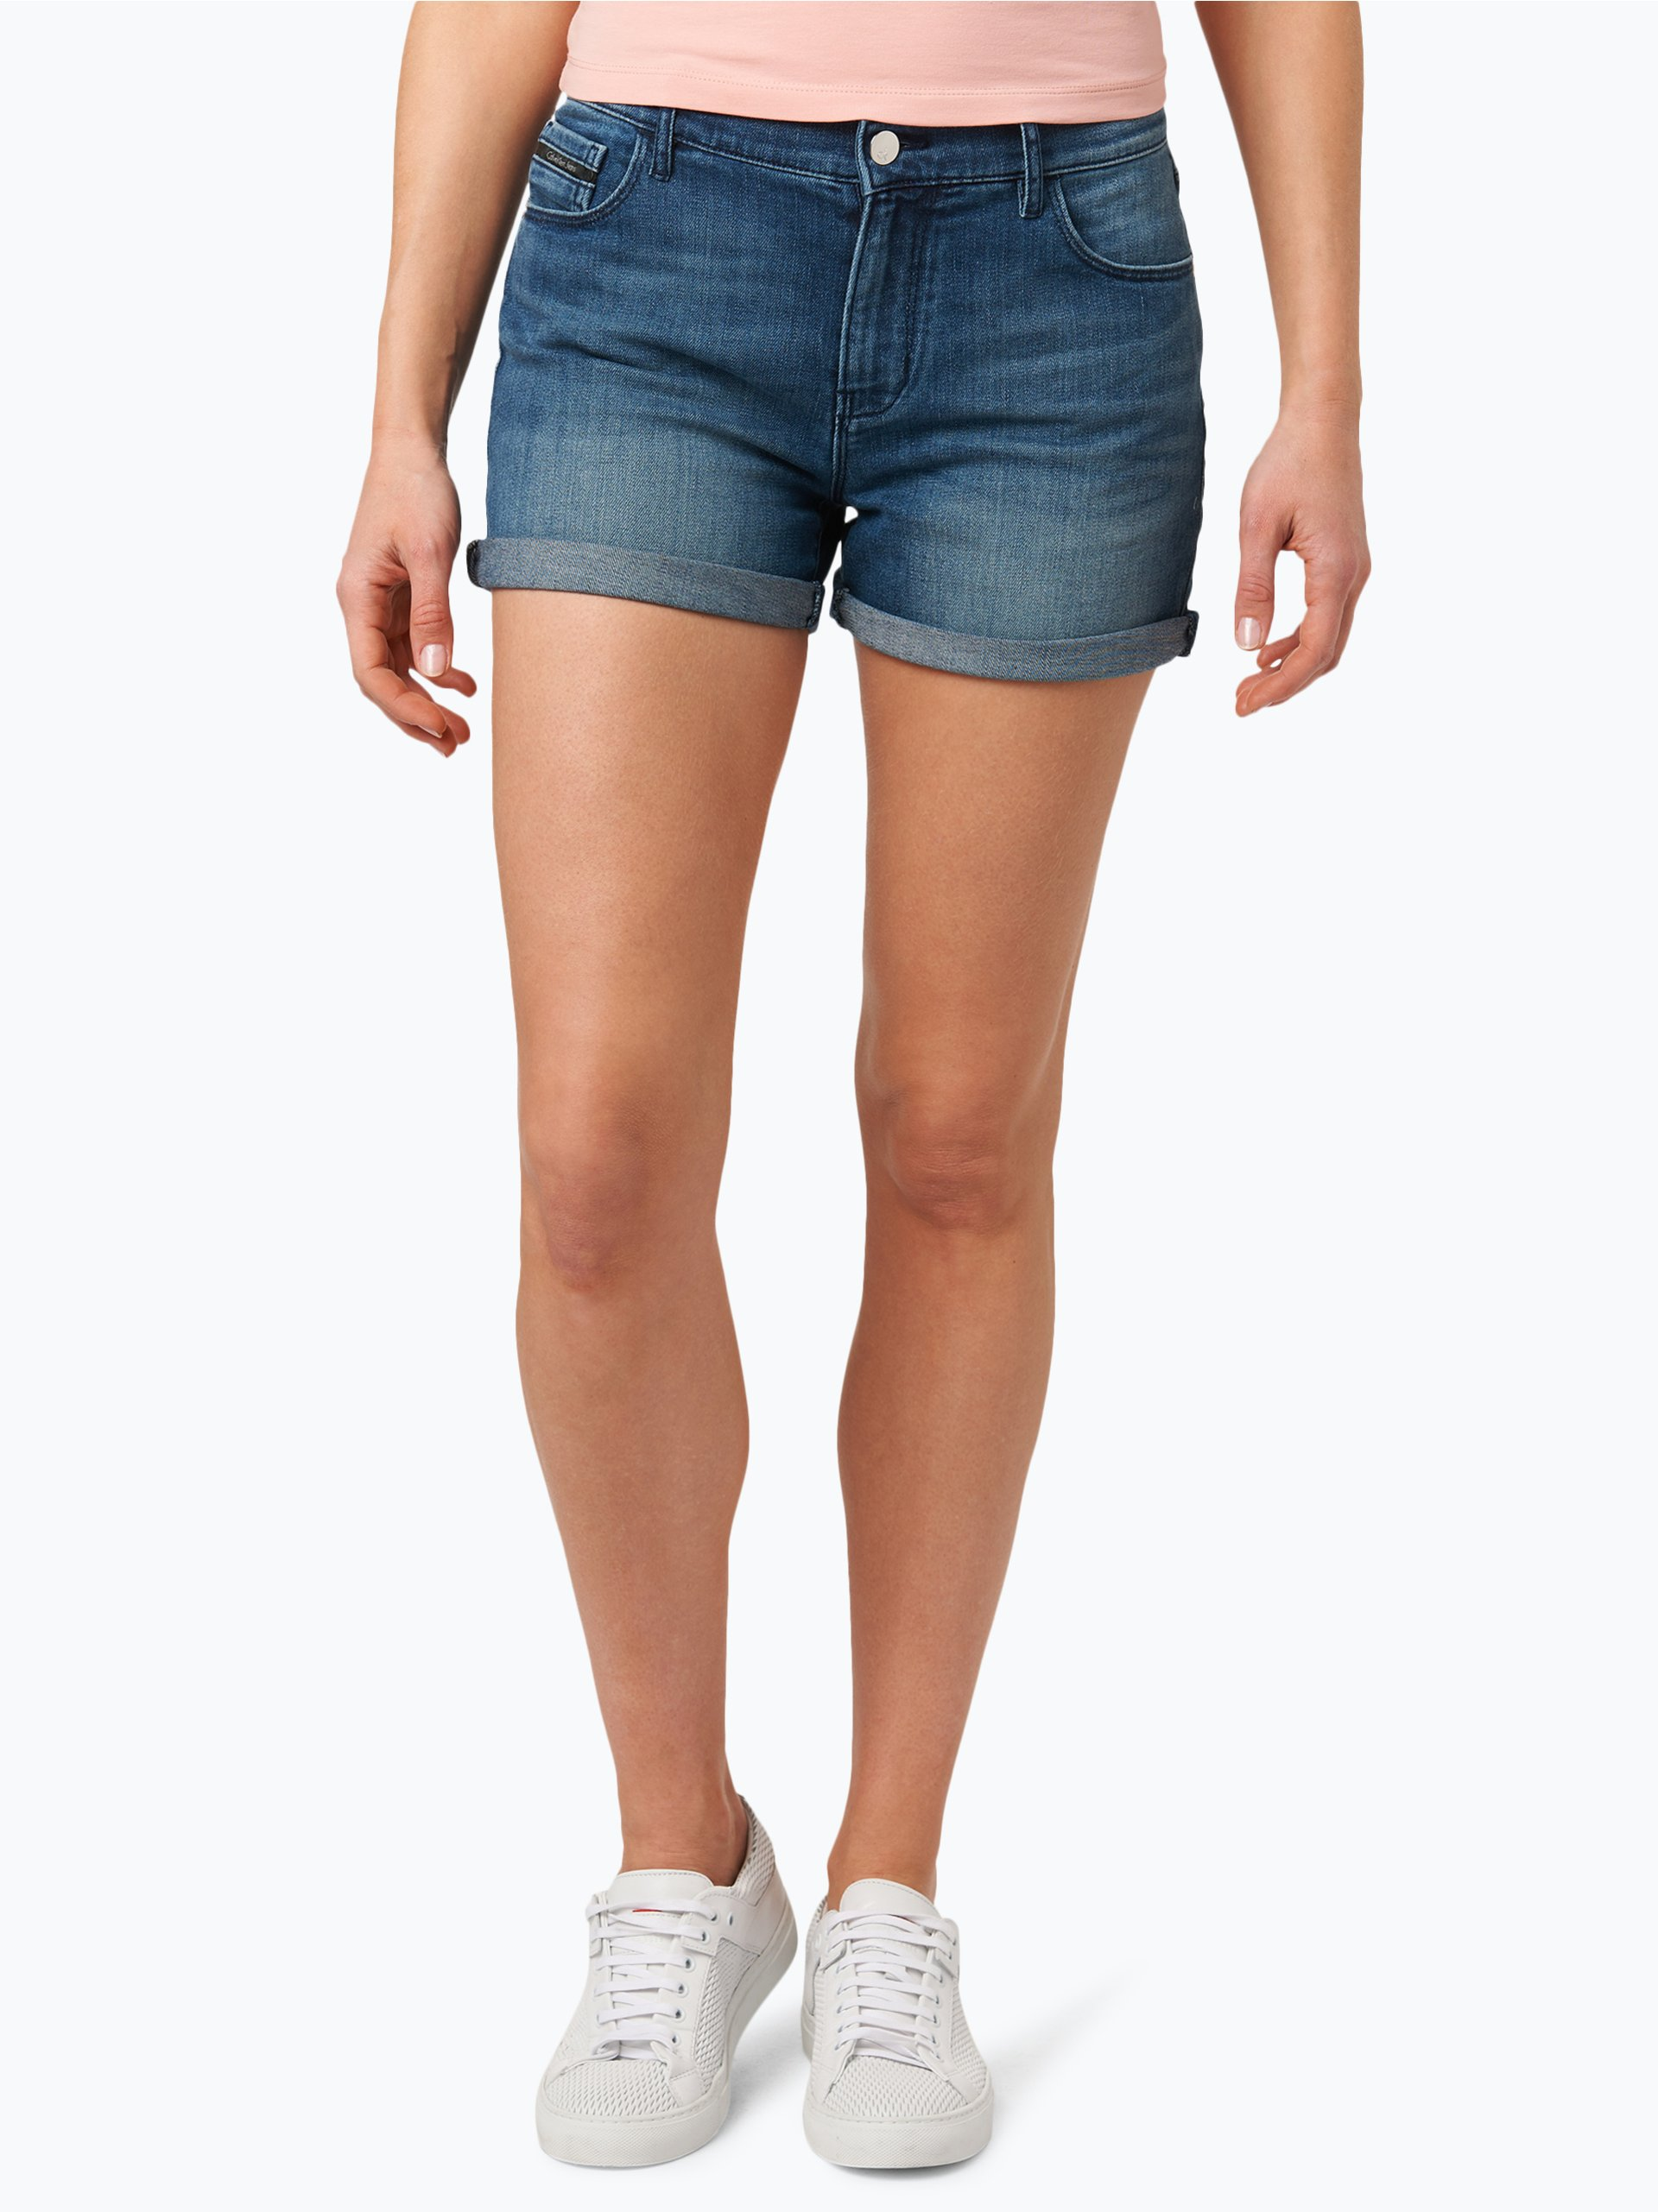 calvin klein jeans damen shorts blau uni online kaufen peek und cloppenburg de. Black Bedroom Furniture Sets. Home Design Ideas